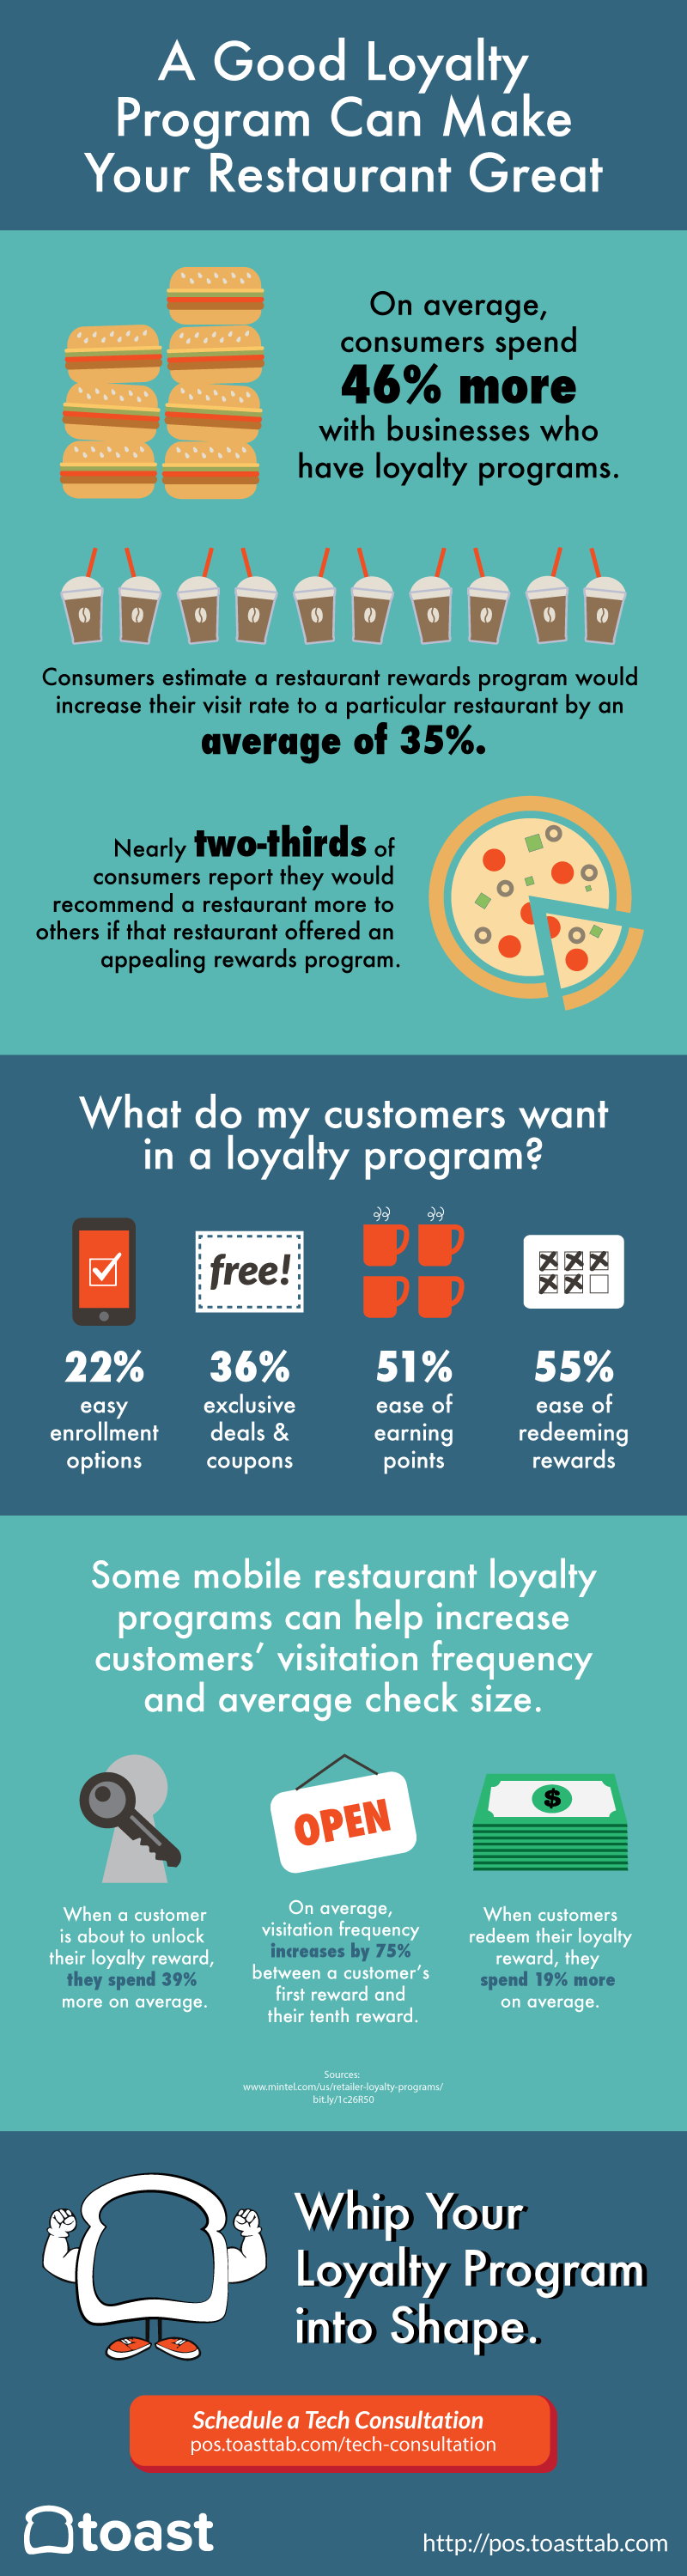 Restaurant_Loyalty_Program_Infographic.png